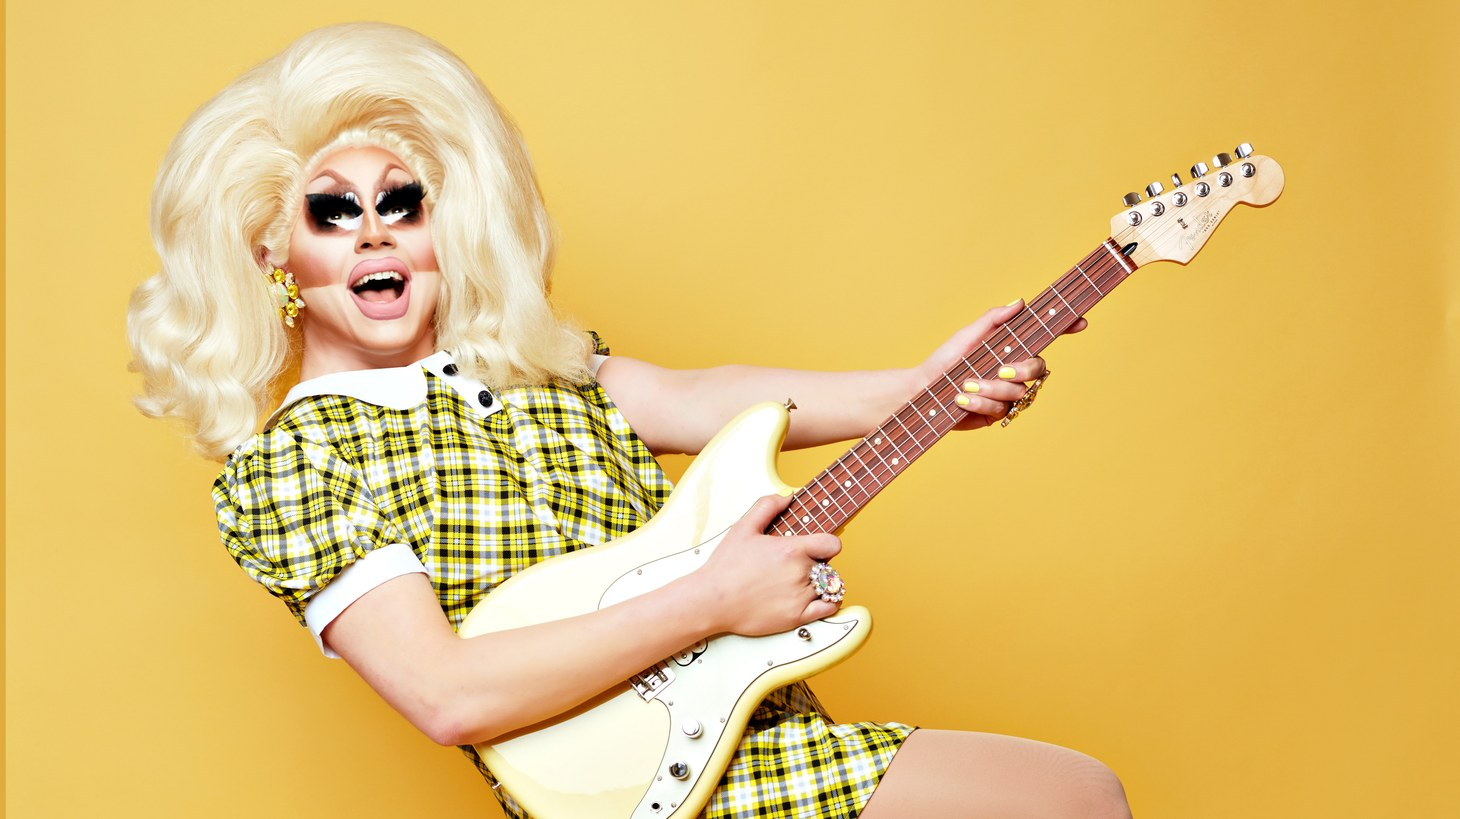 "Trixie Mattel — the 2018 winner of RuPaul's Drag Race All Stars — incorporates her massive Barbie fandom into her style and her music. Known mostly as an earnest country singer, ""Malibu"" shifts into a sugary pop sound."